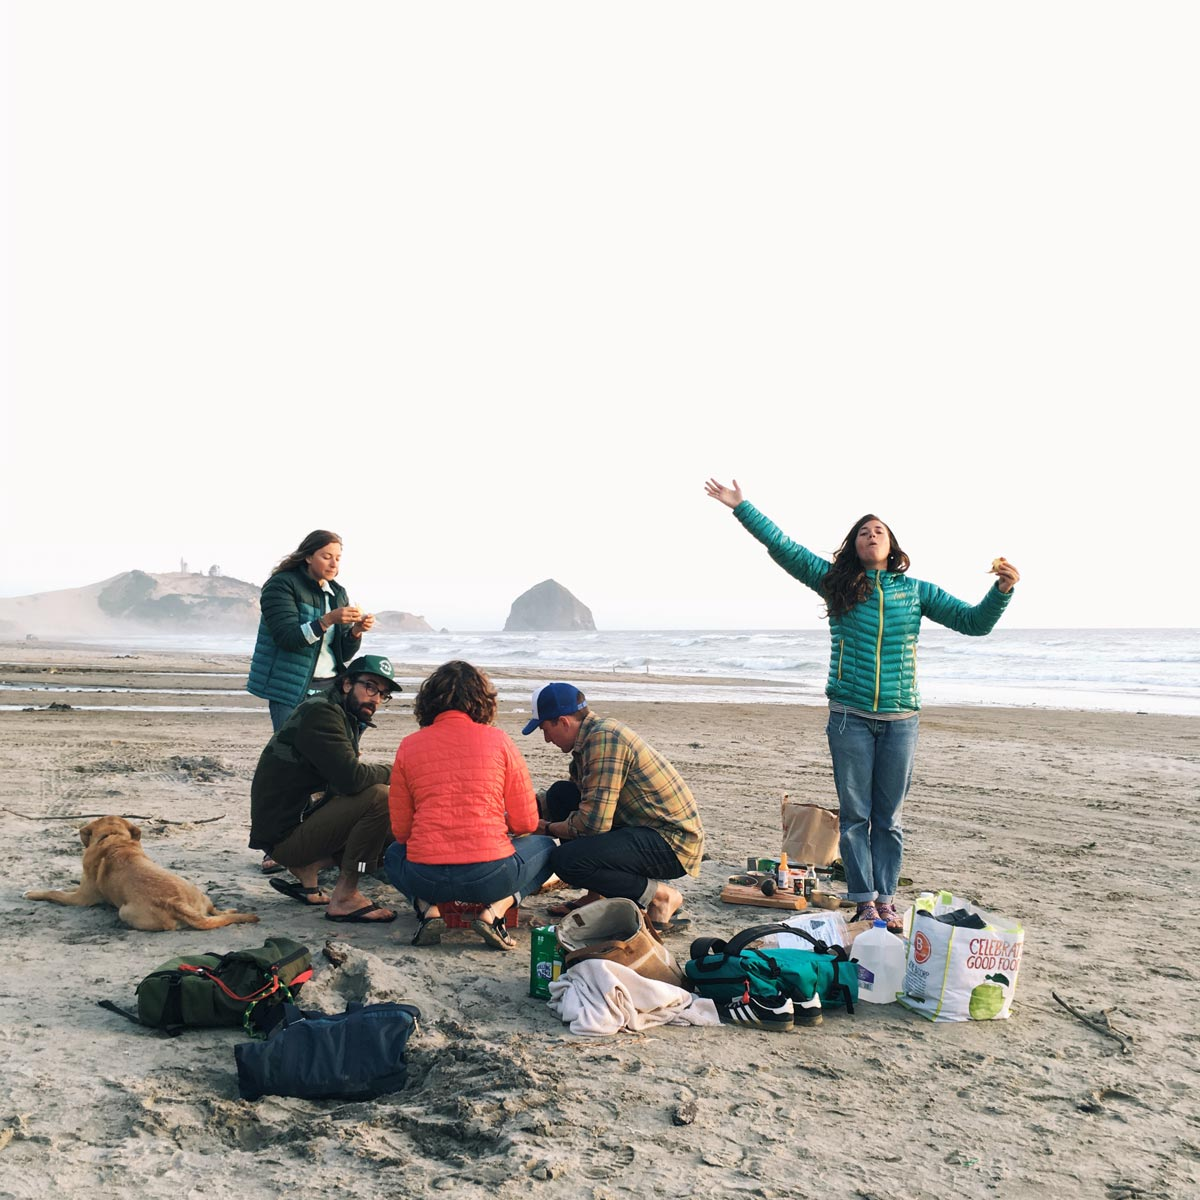 Photo by Jules Davis of campers cooking on the coastline